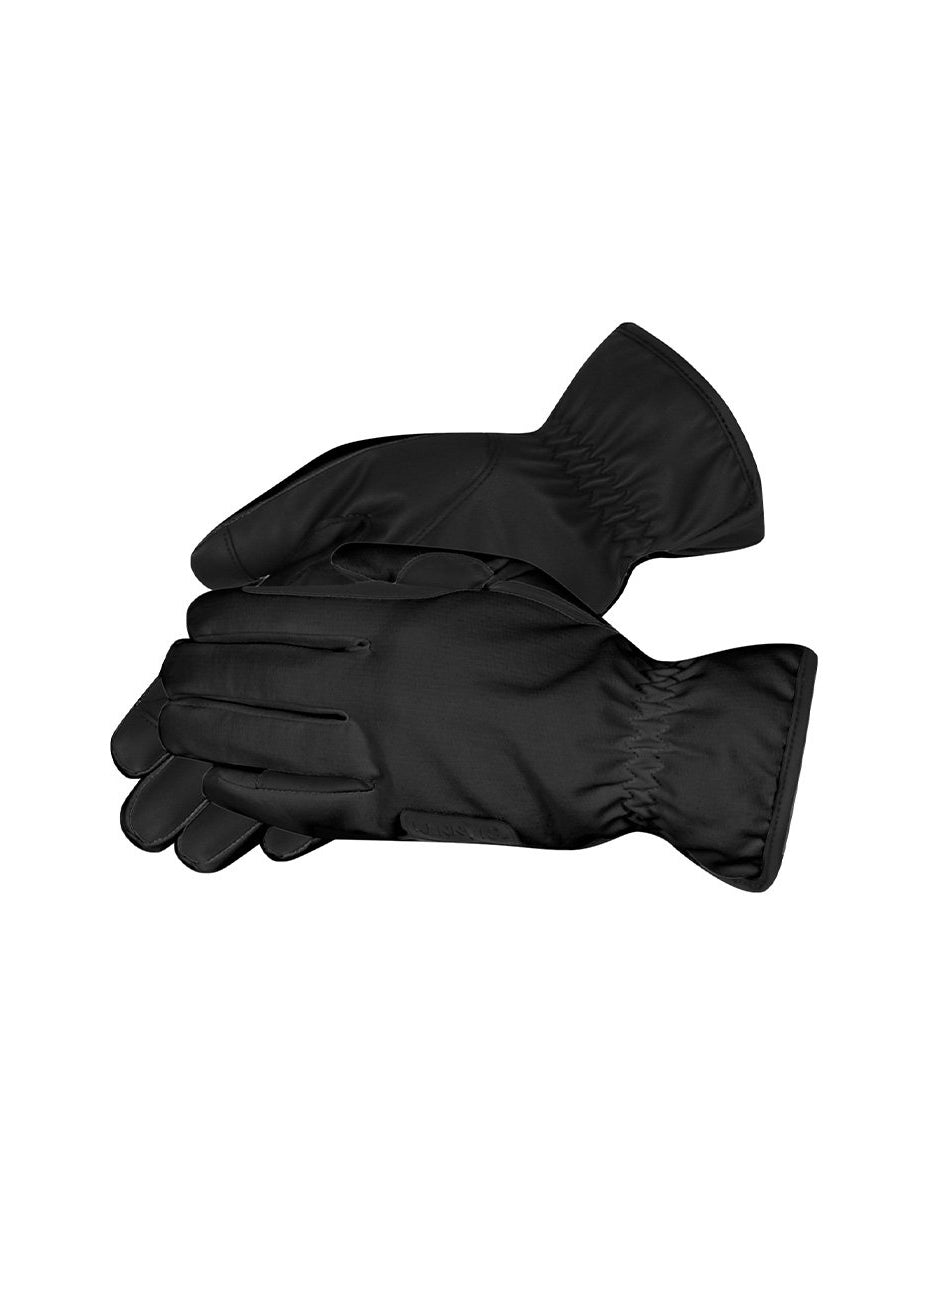 BLACK::variant::Hand Warmer Glove